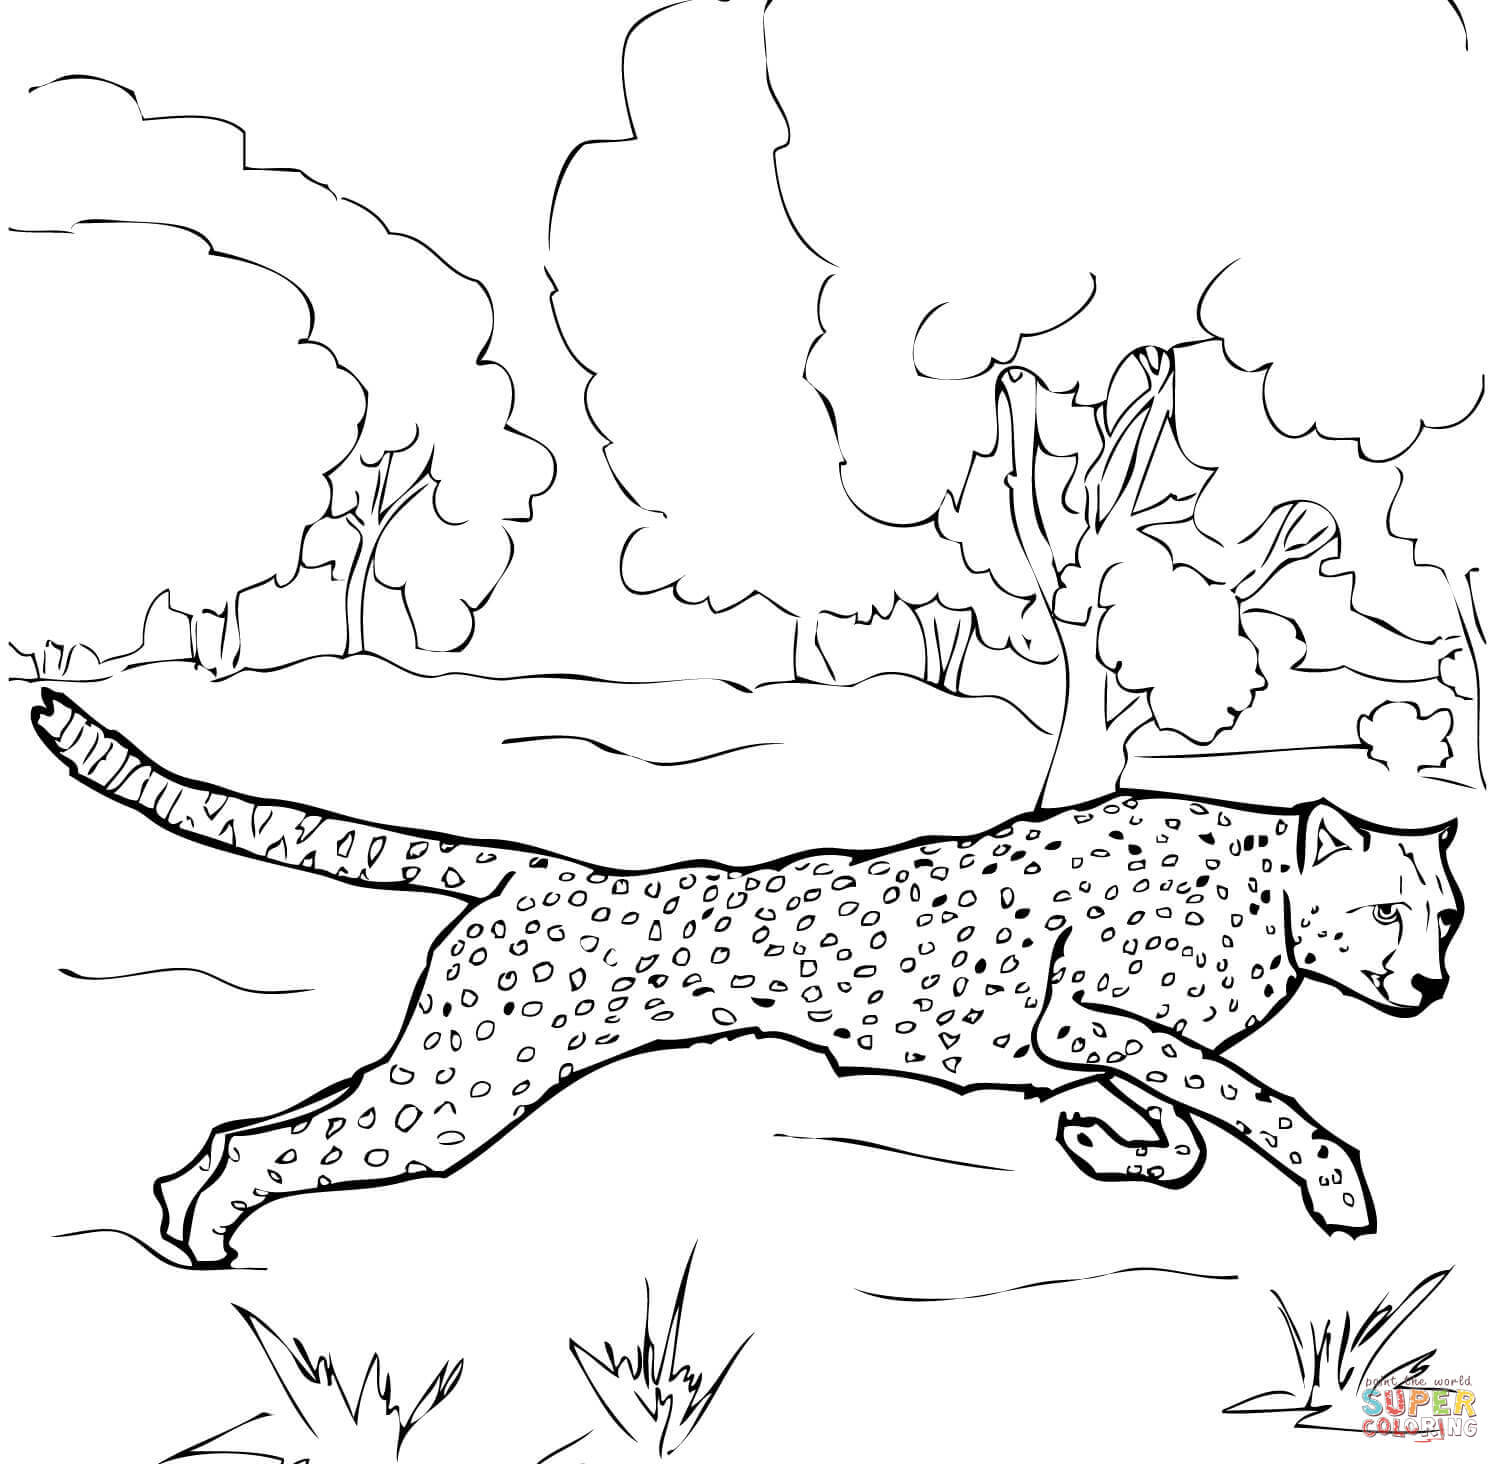 Baby Cheetah For Coloring Pages - Coloring Home